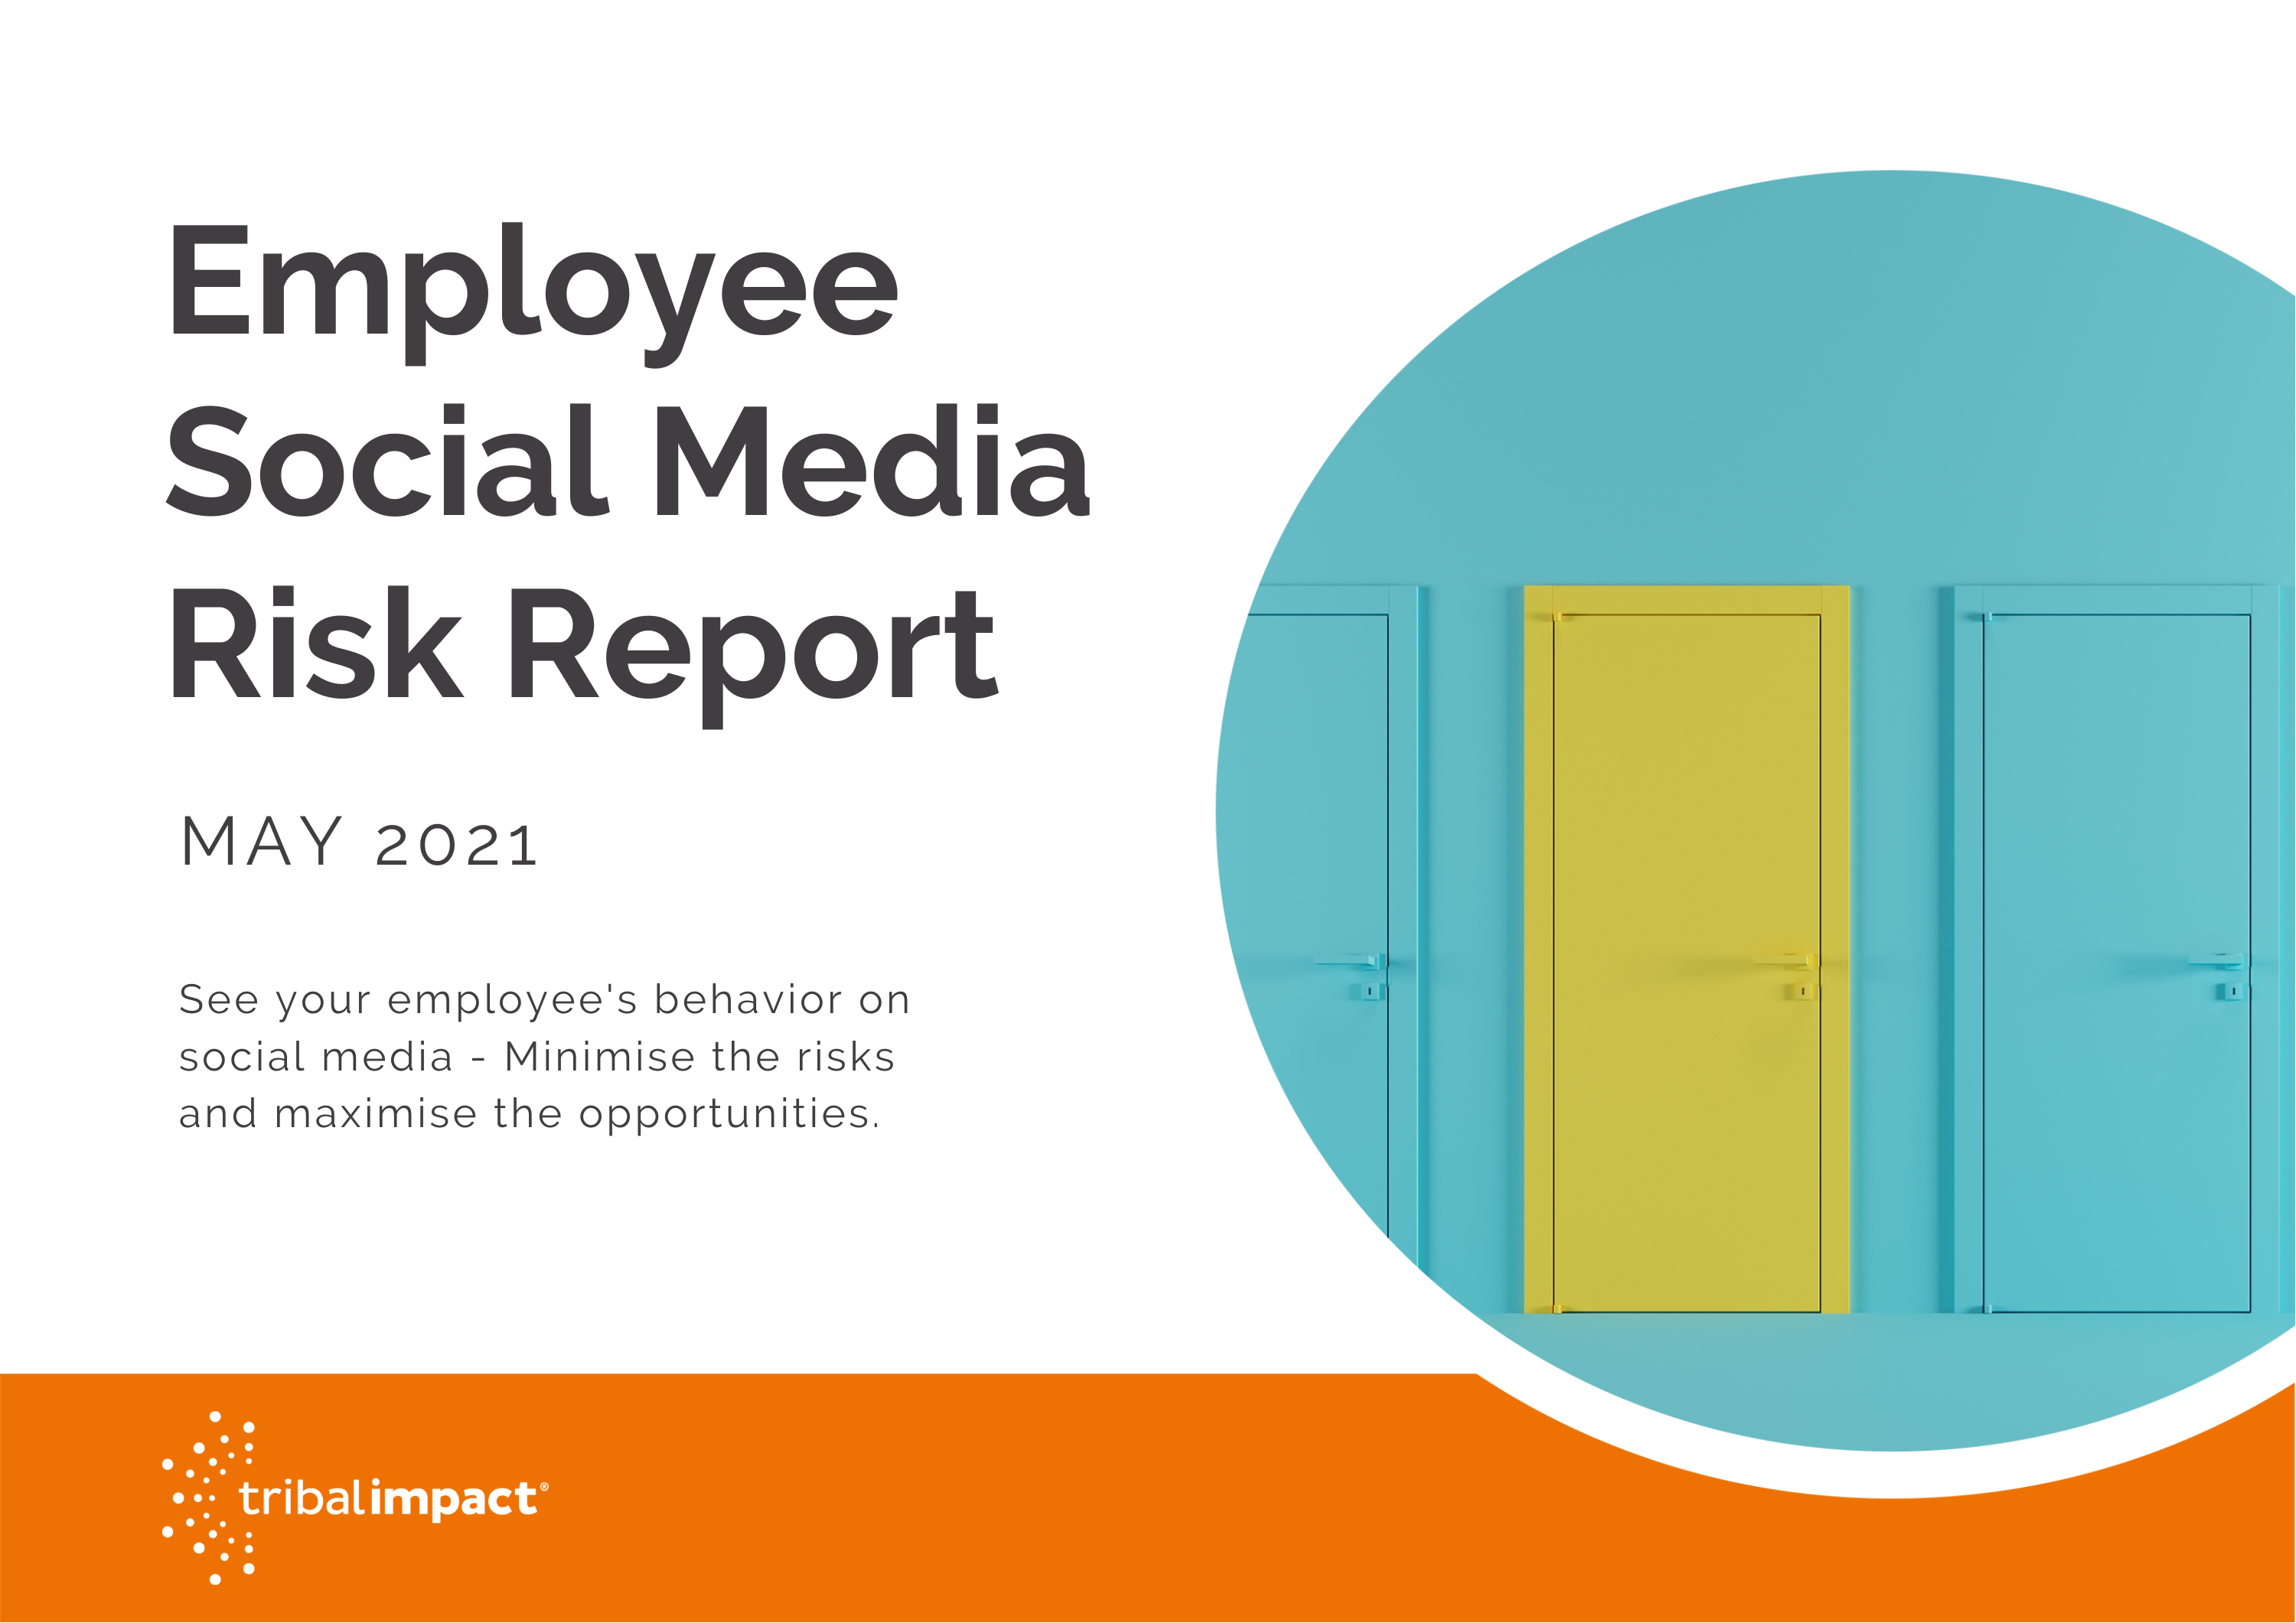 Copy of Employee Social Media Risk Report 2021